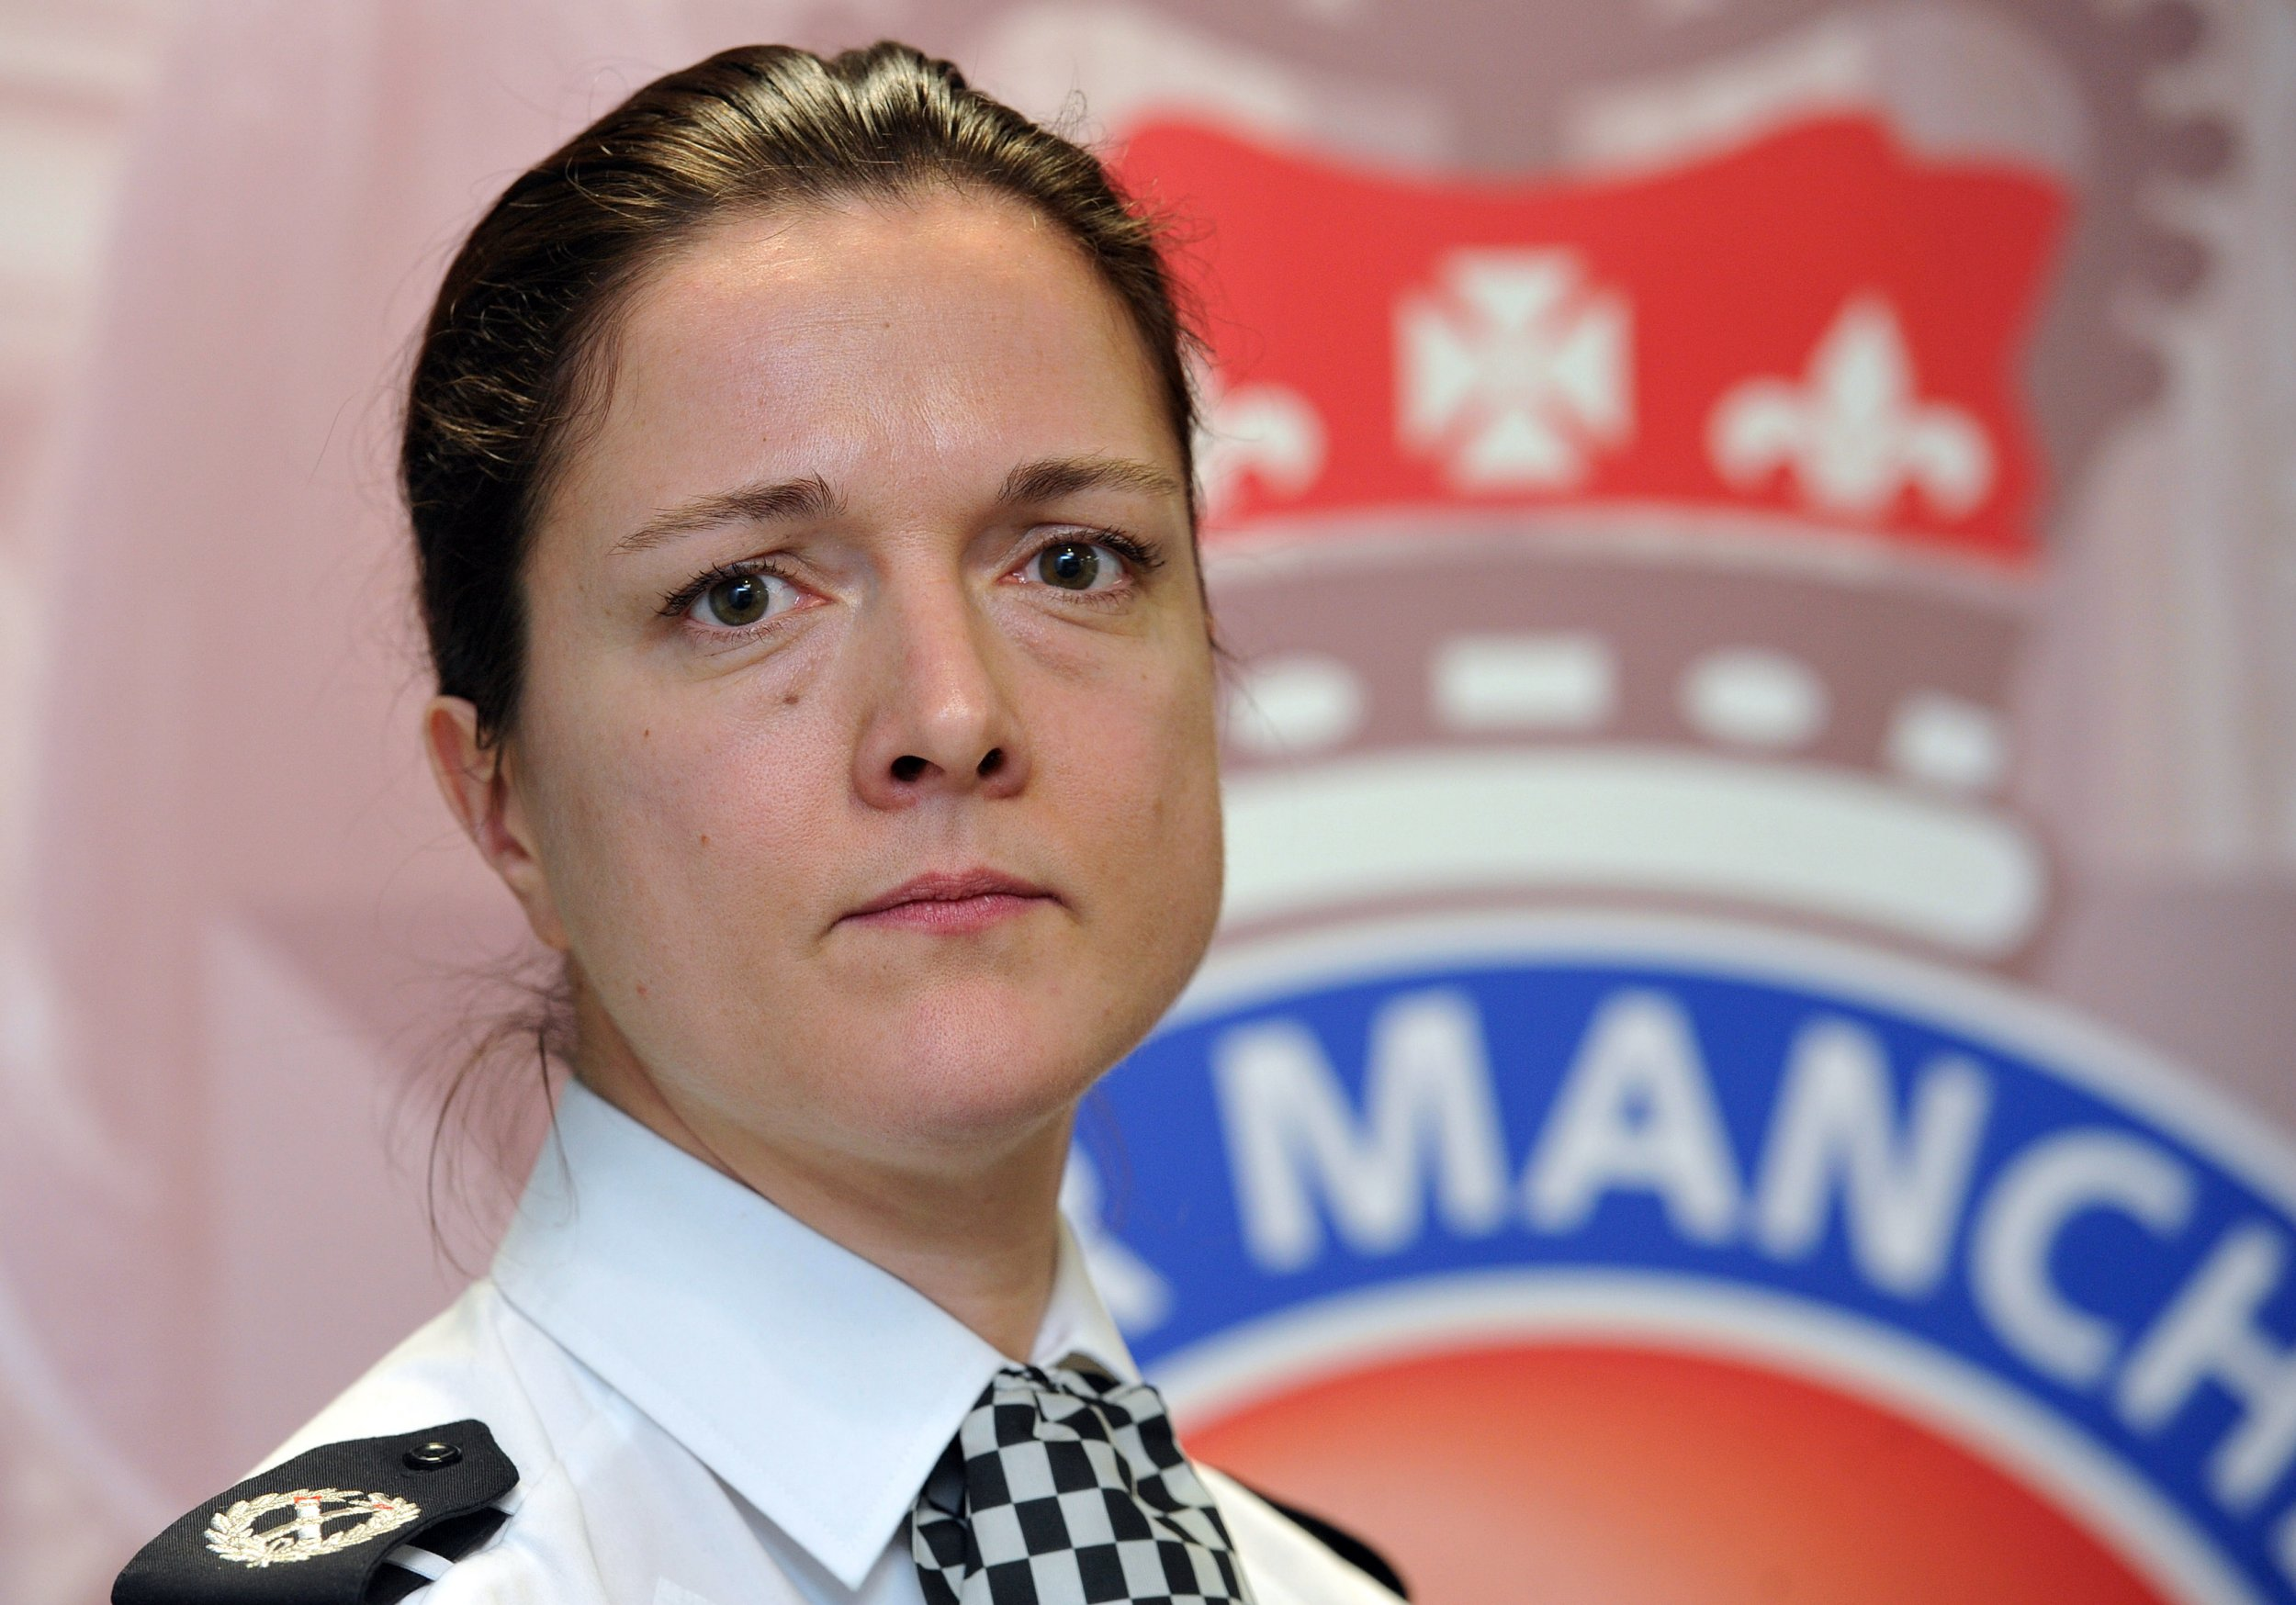 The scene of a murder last night after a Asian man was attacked and died in RochdalenPic shows Police press conference Assistant Chief Constable Rebekah Sutcliffe